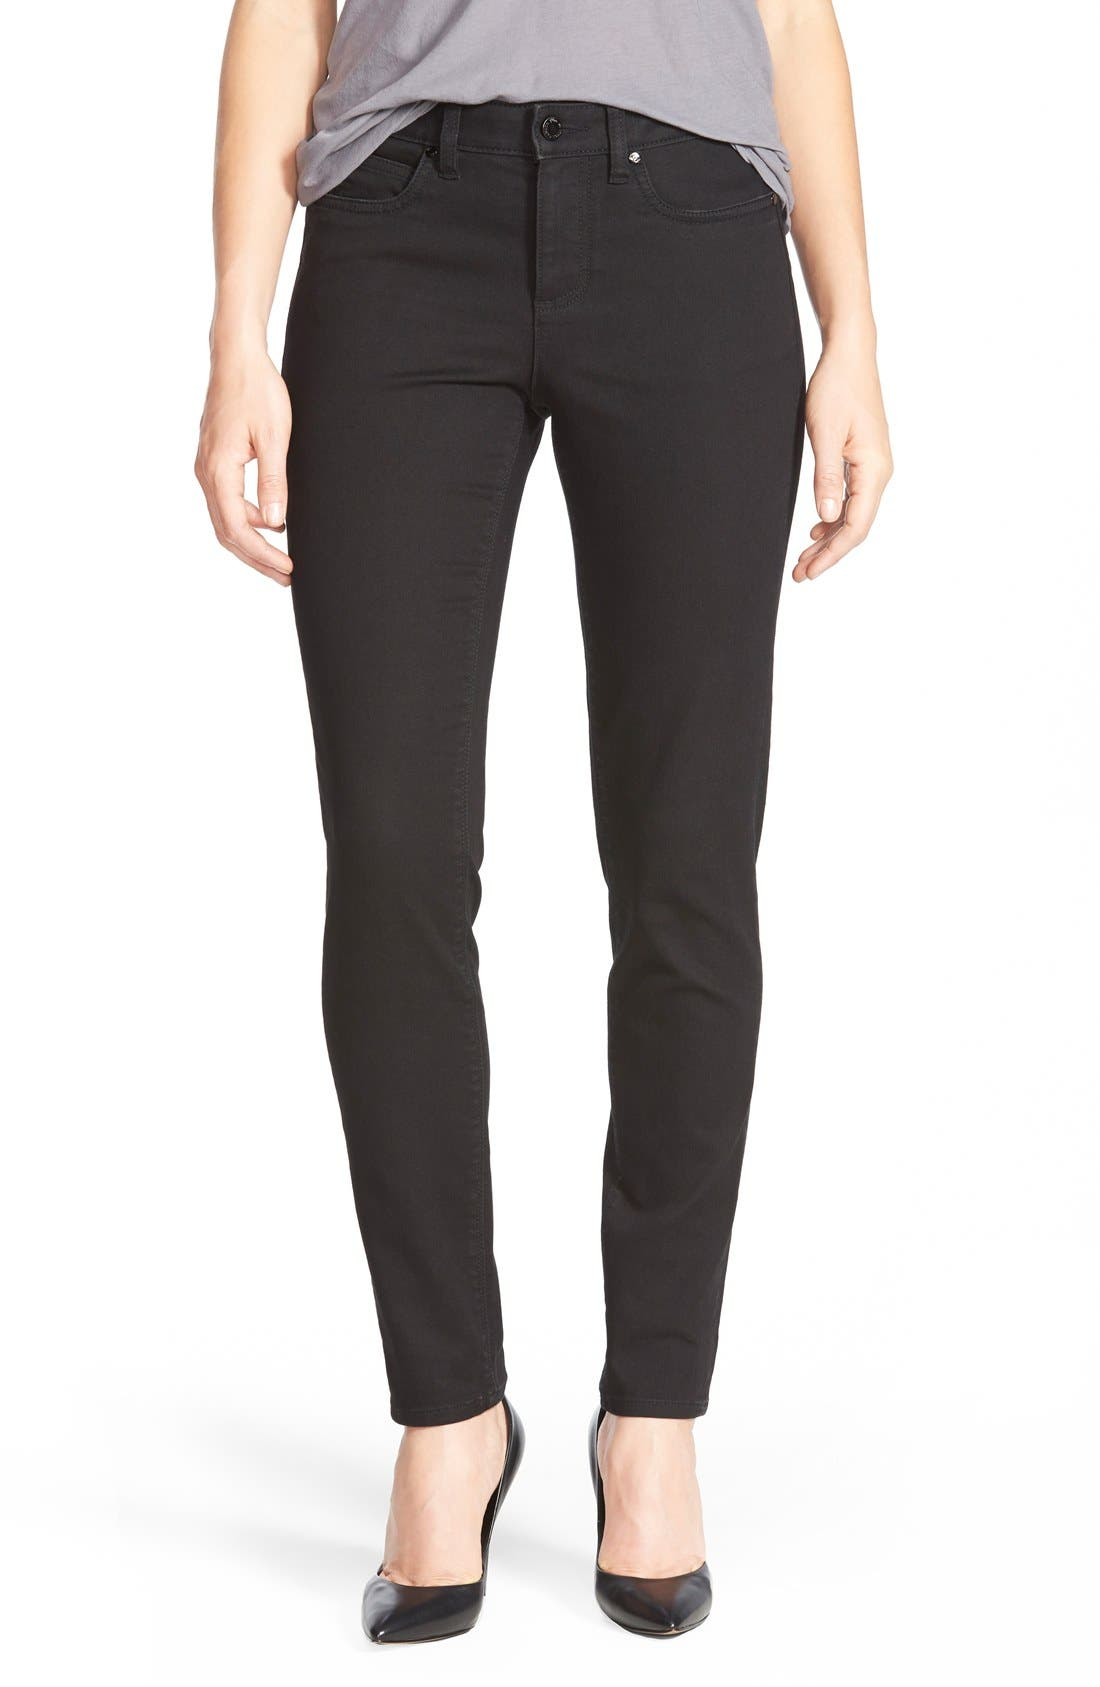 Alternate Image 1 Selected - Two by Vince Camuto Stretch Skinny Jeans